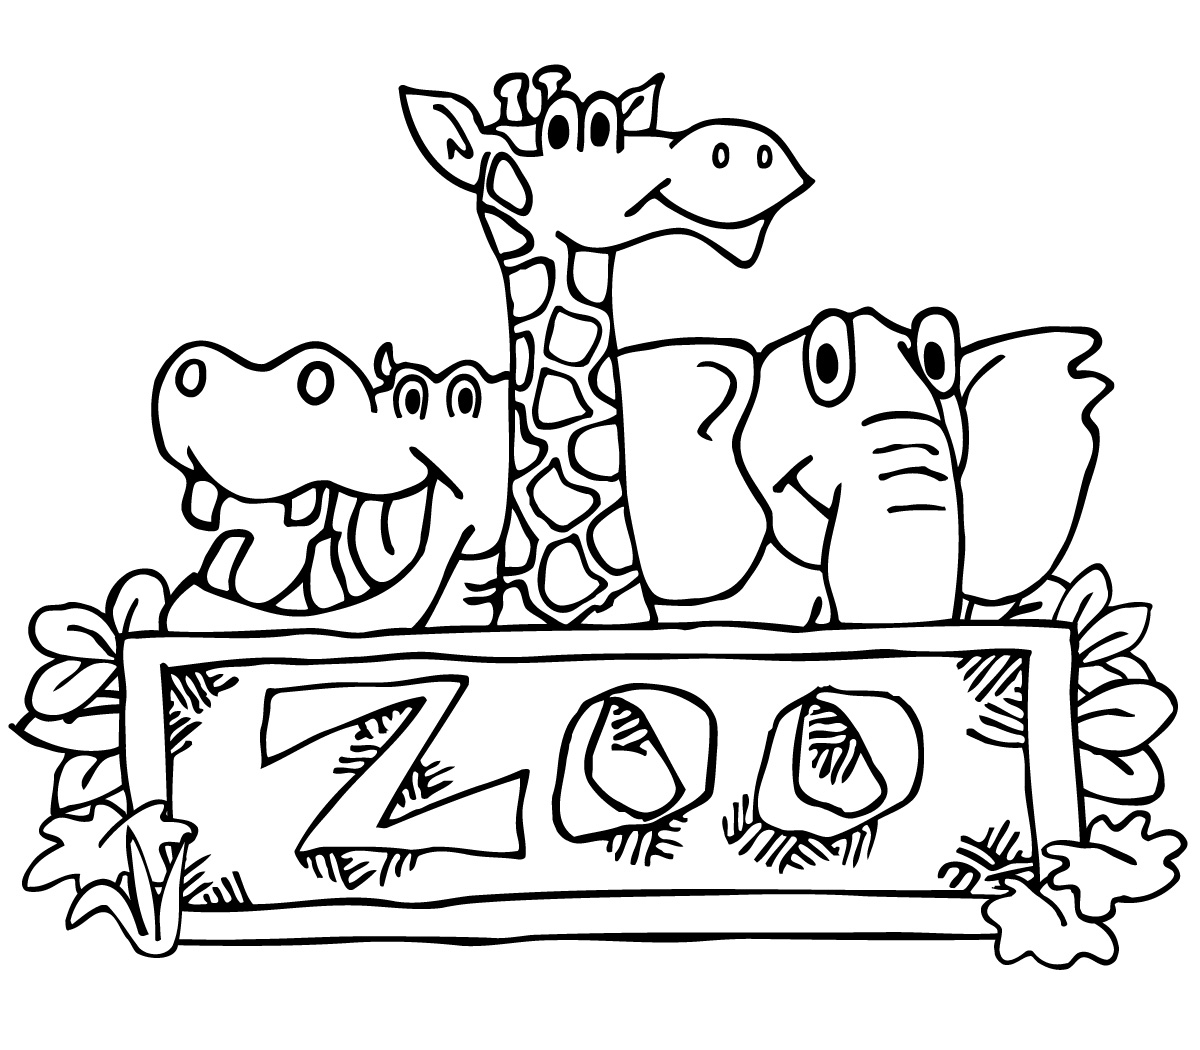 Zoo clipart black and white White clipart Zoo collection Black